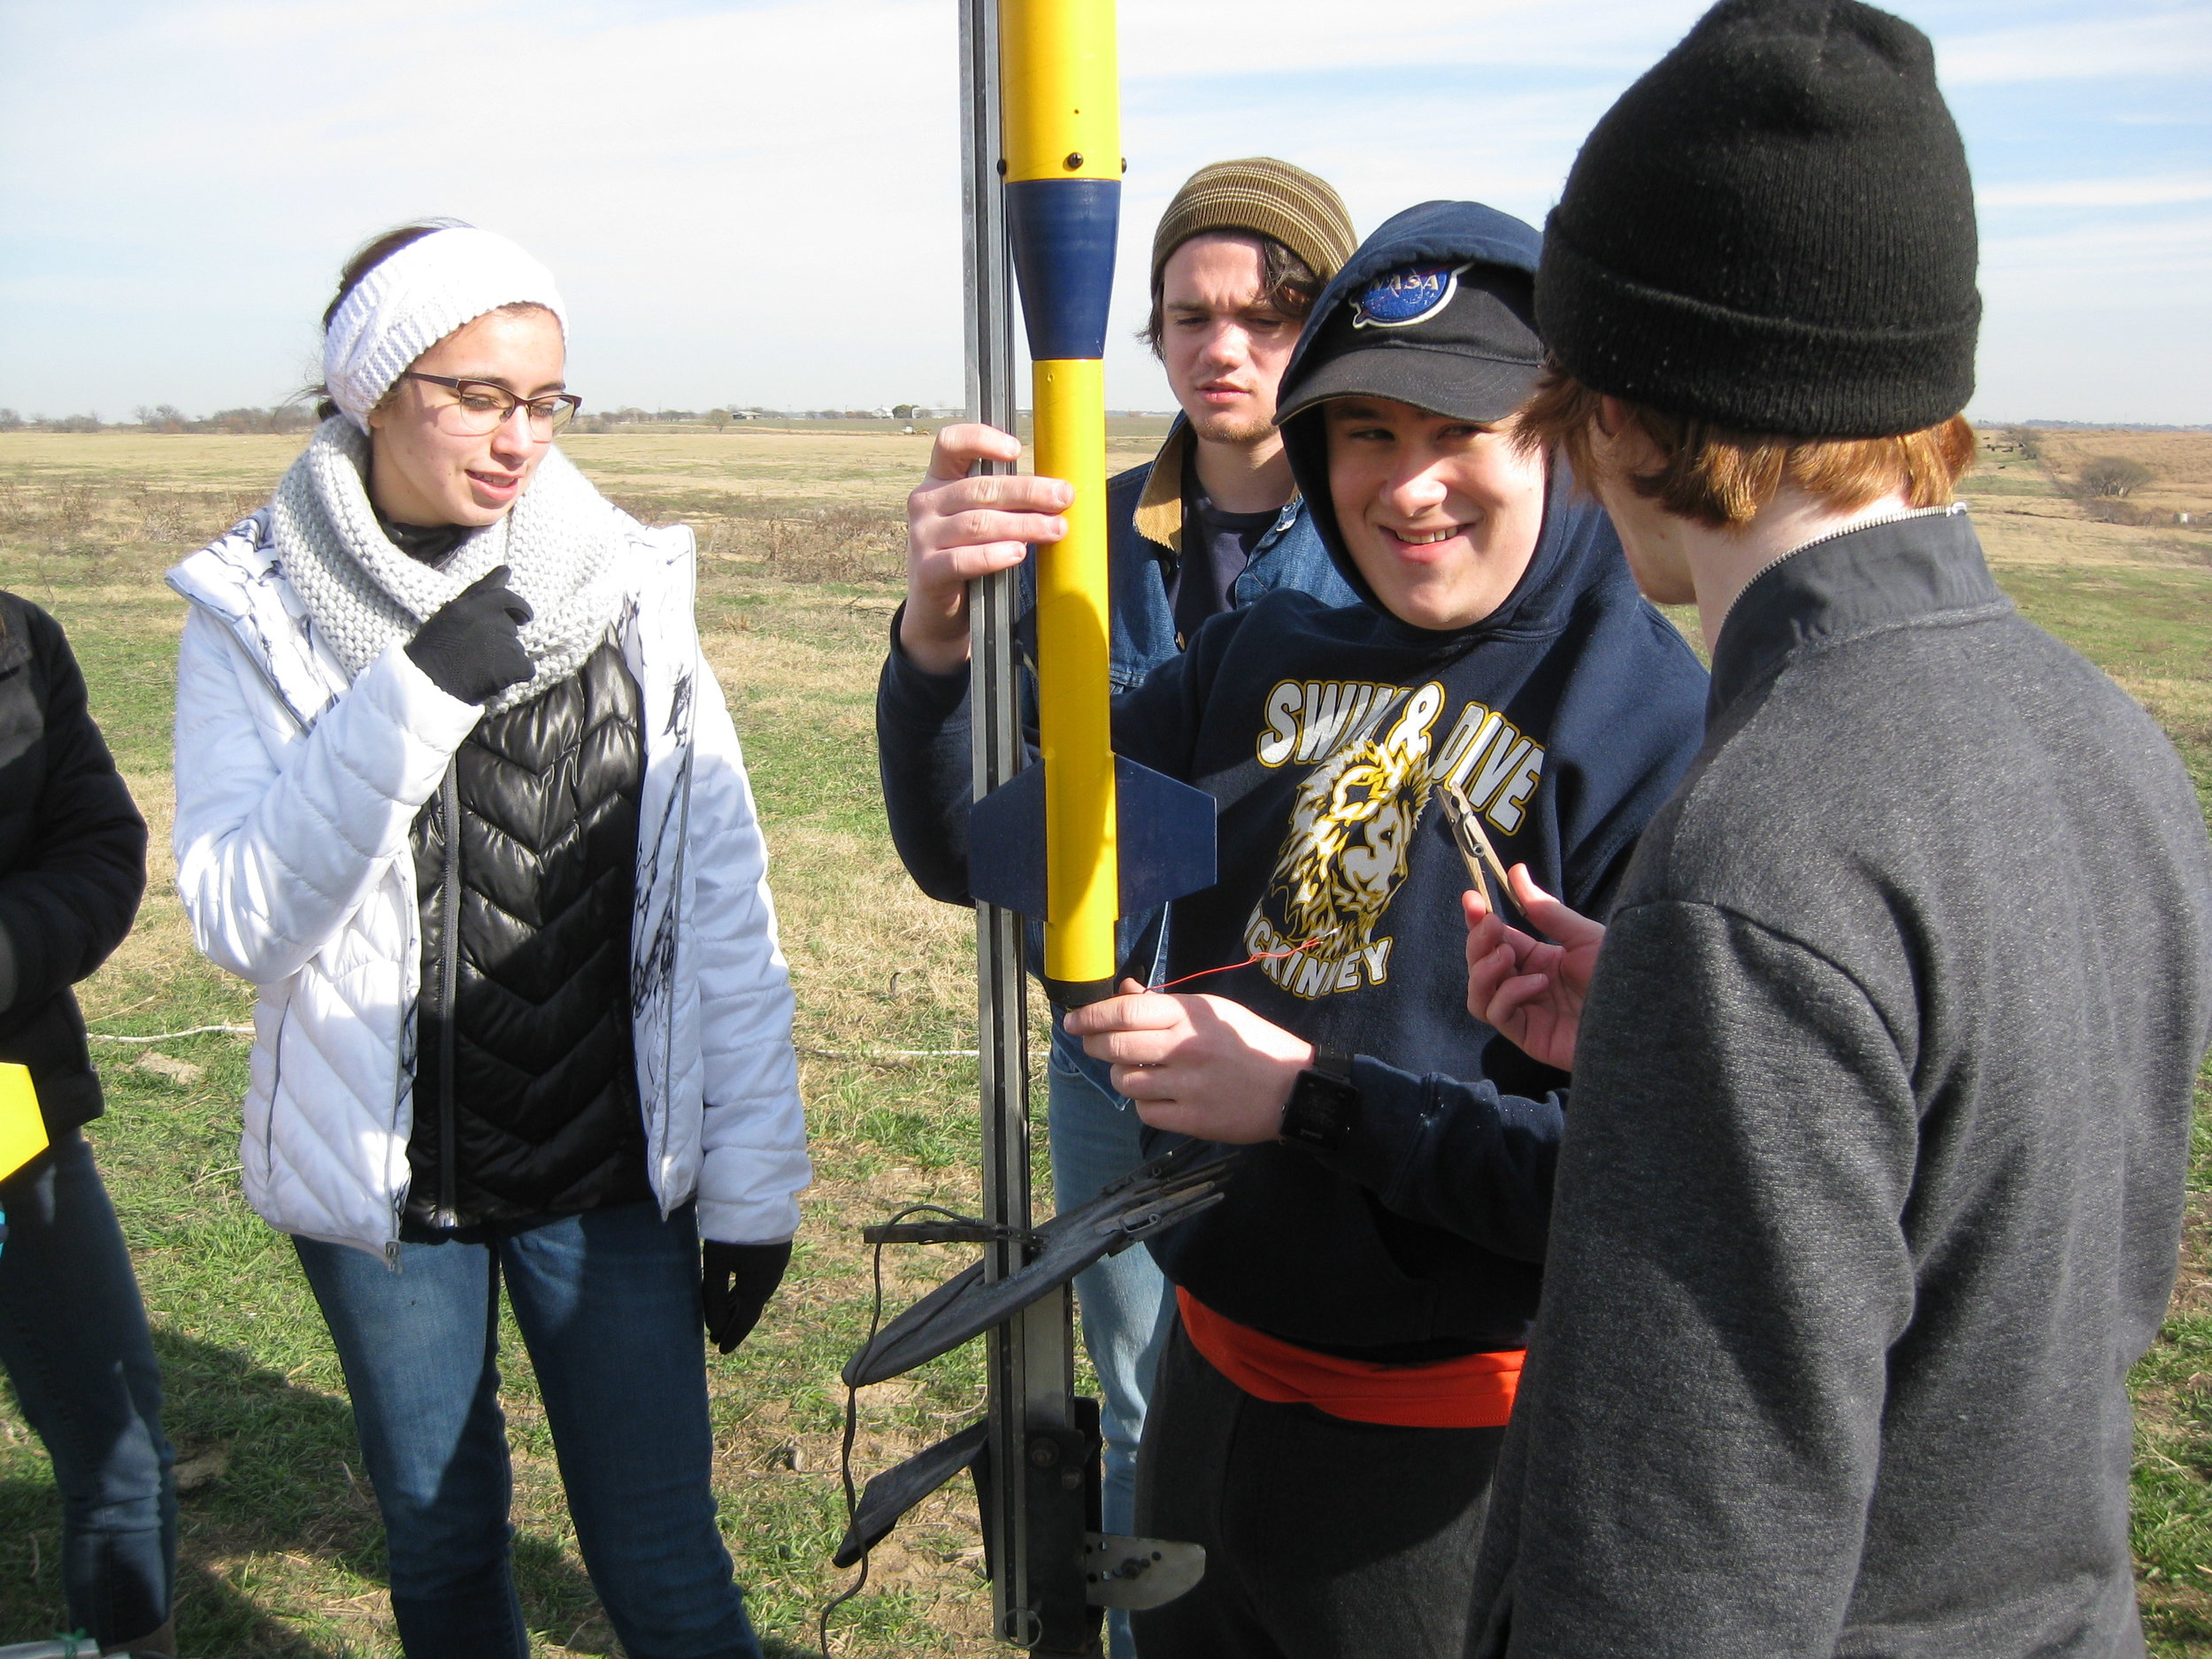 Veterans' rocket being placed on the rail.